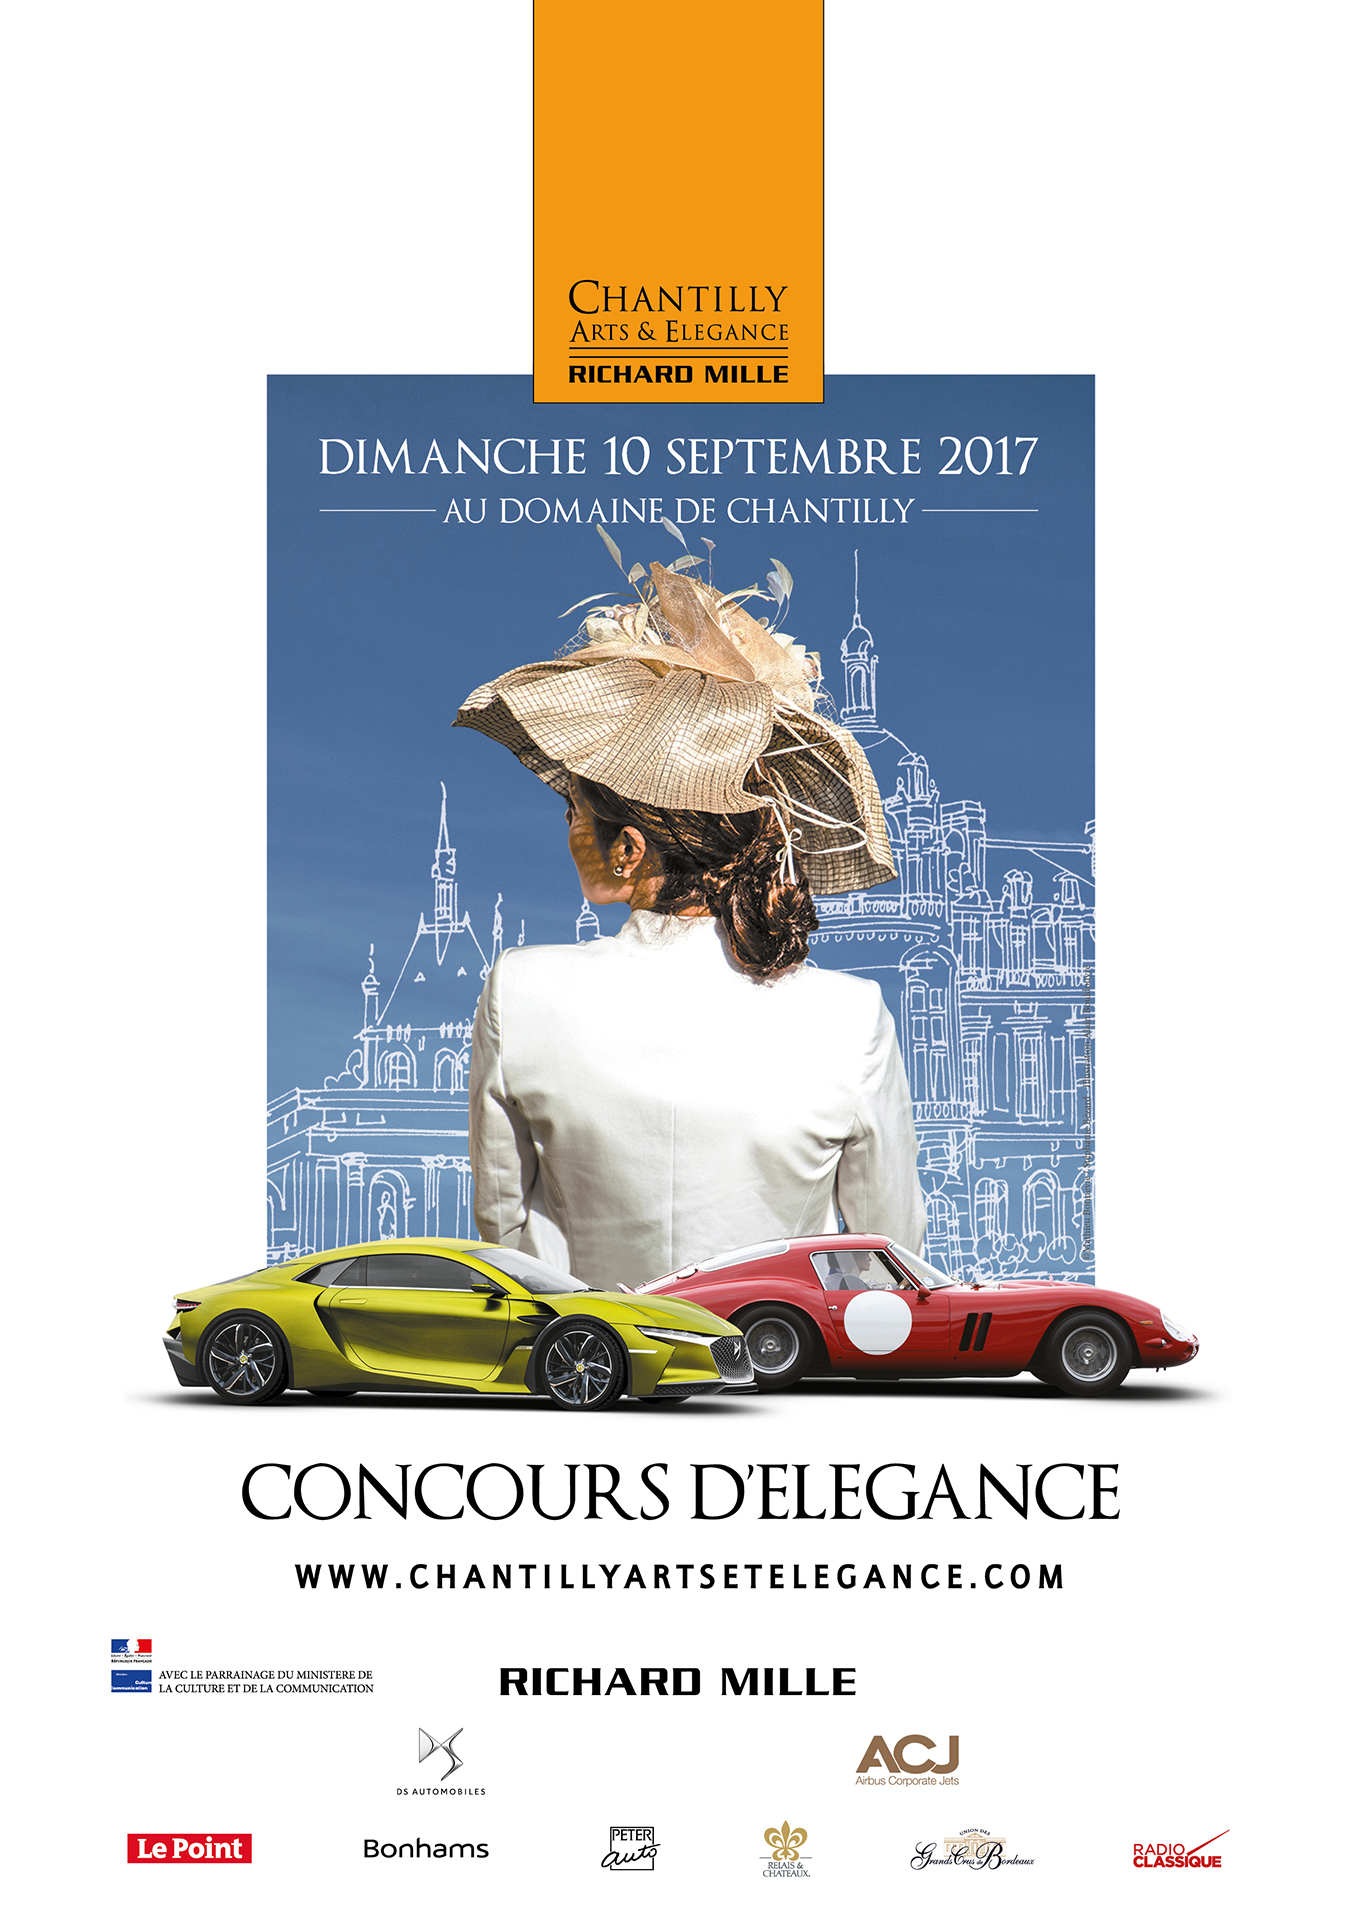 Affiche Chantilly ARts & Elegance Richard Mille 2017